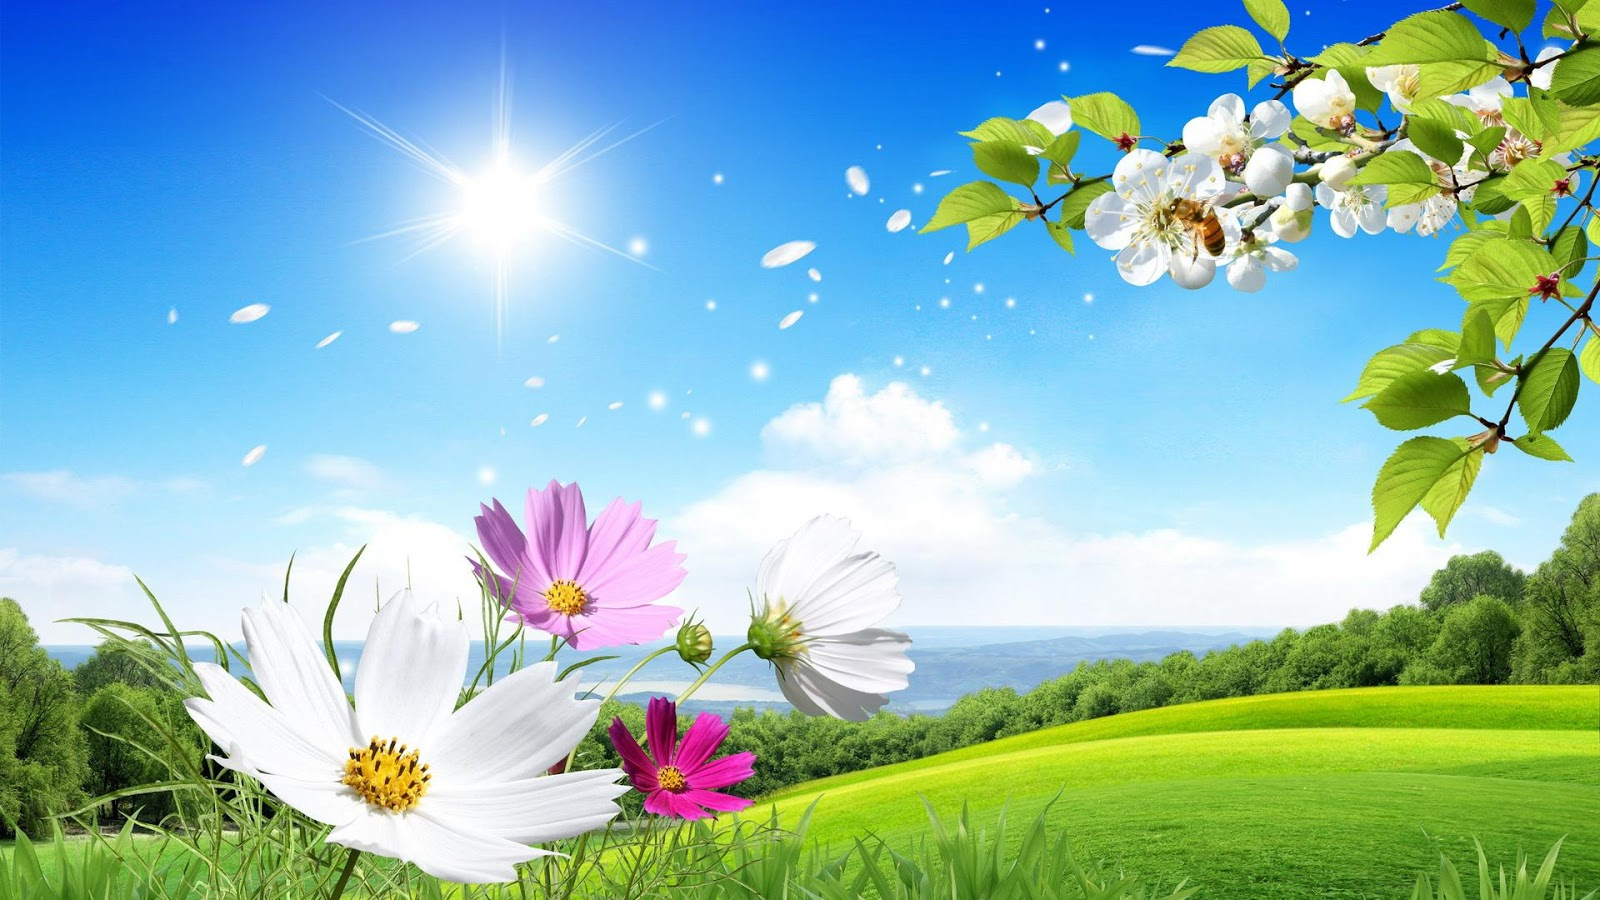 flowers for flower lovers Flowers wallpapers natural sceneries 1600x900